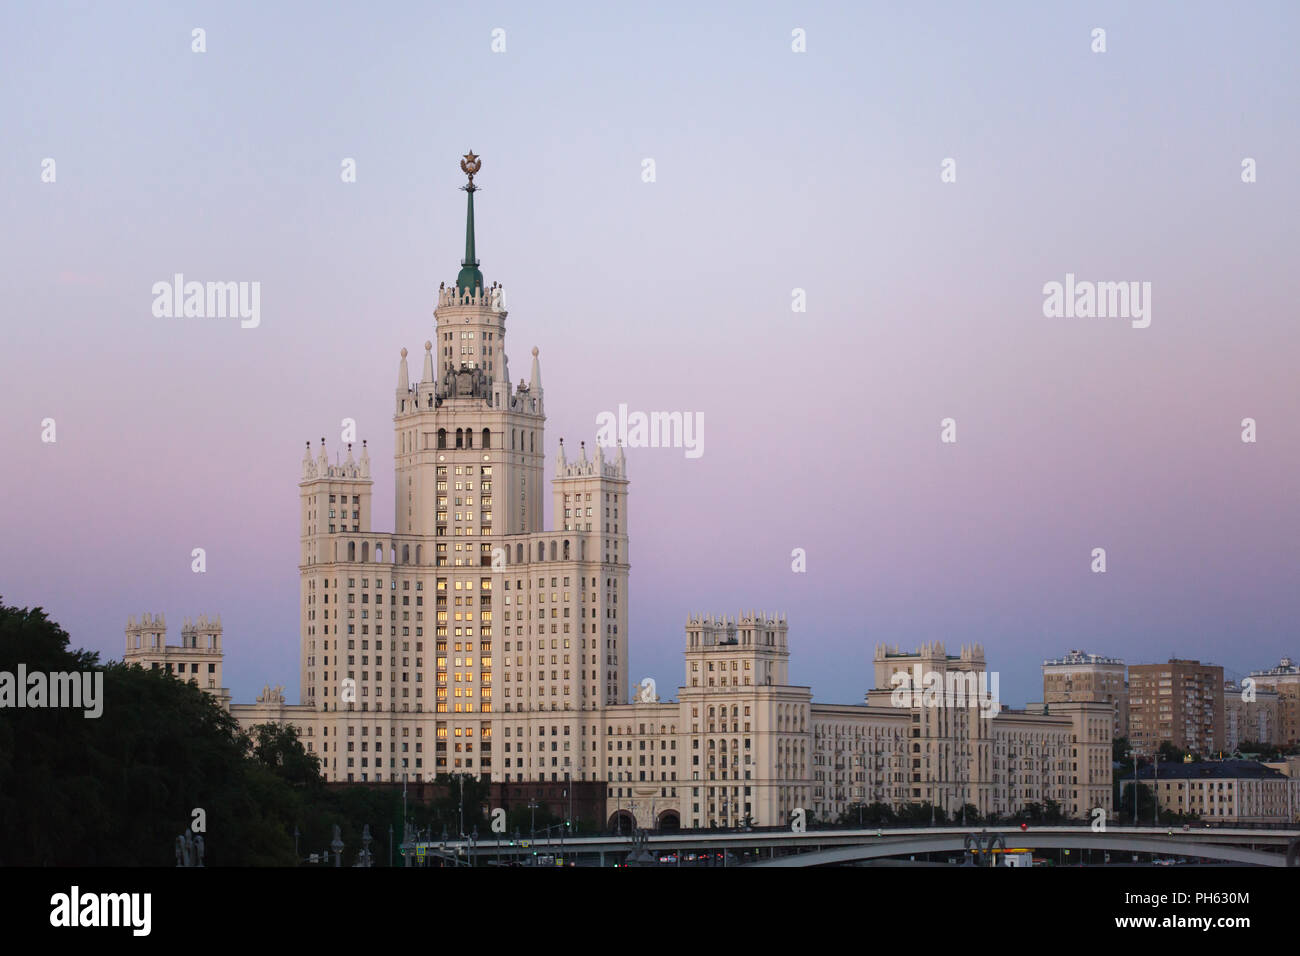 Kotelnicheskaya Embankment Building pictured at sunset from the Floating Bridge in Zaryadye Park in Moscow, Russia. One of the seven Stalinist skyscrapers was designed by Soviet architects Dmitry Chechulin and Andrei Rostkovsky and built in 1947-1952. - Stock Image